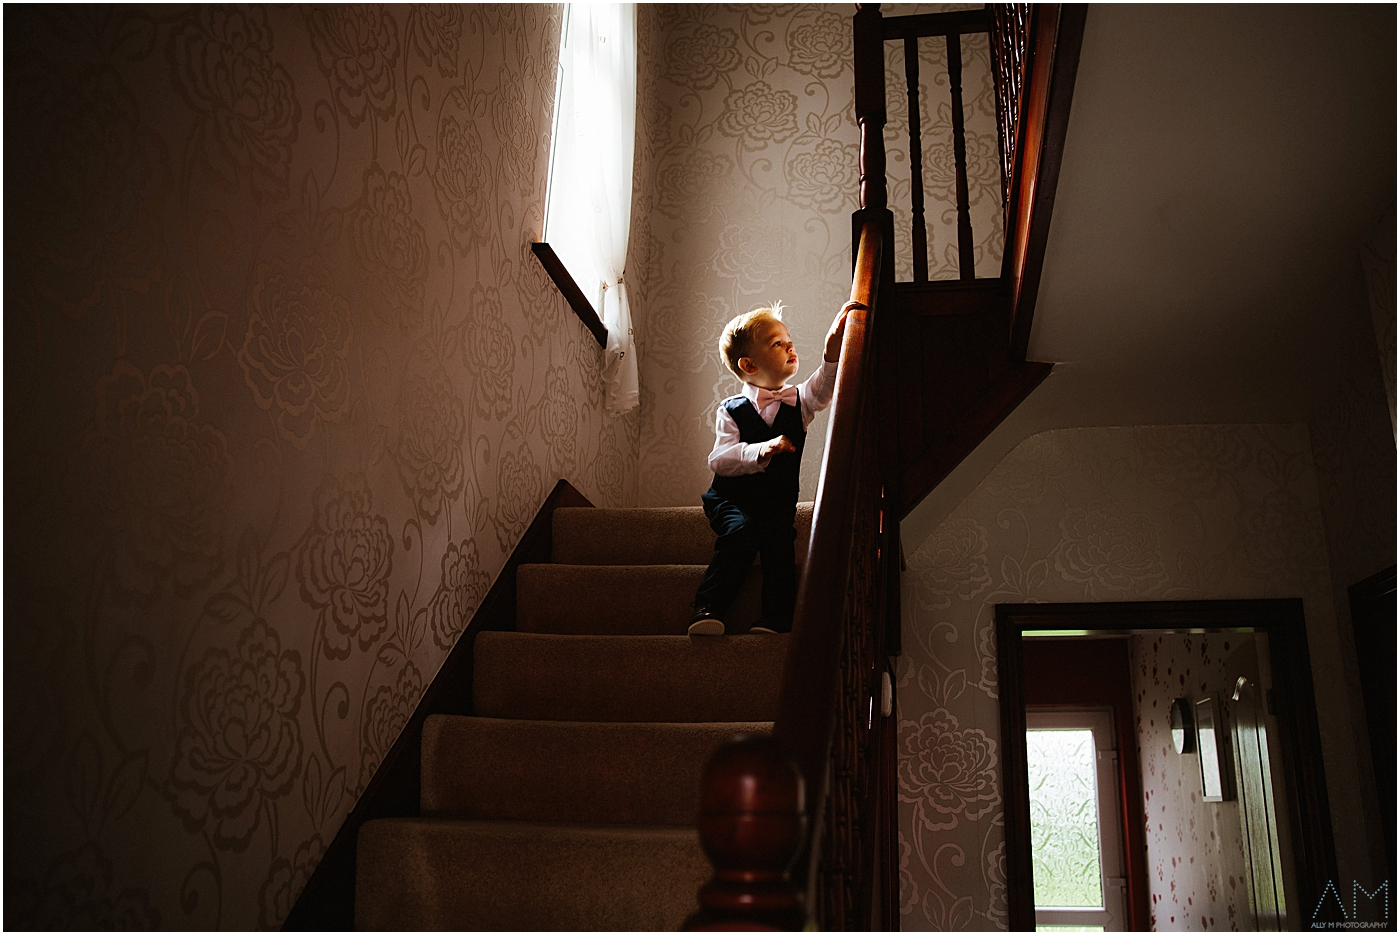 Little boy on the stairs